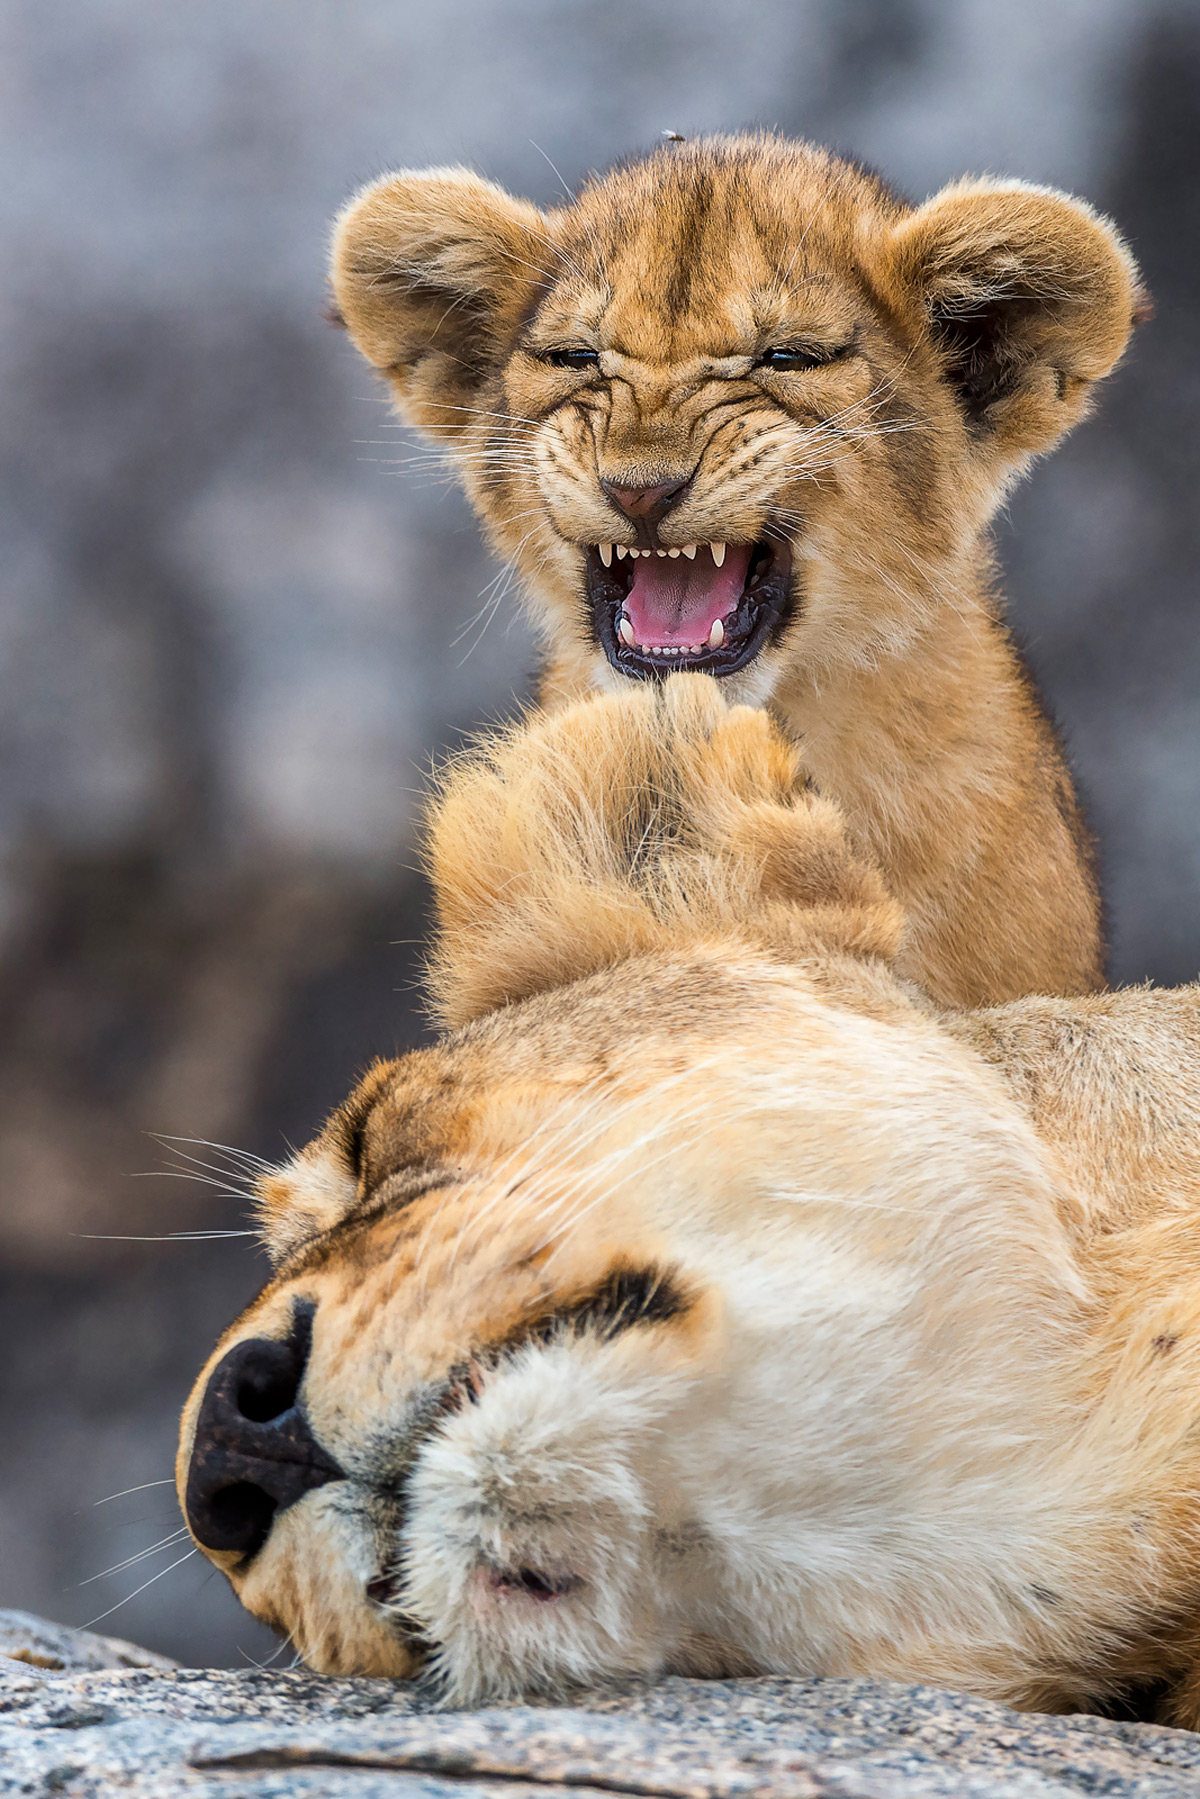 A lion cub tries to gets his mother's attention in Serengeti National Park, Tanzania © Yaron Schmid